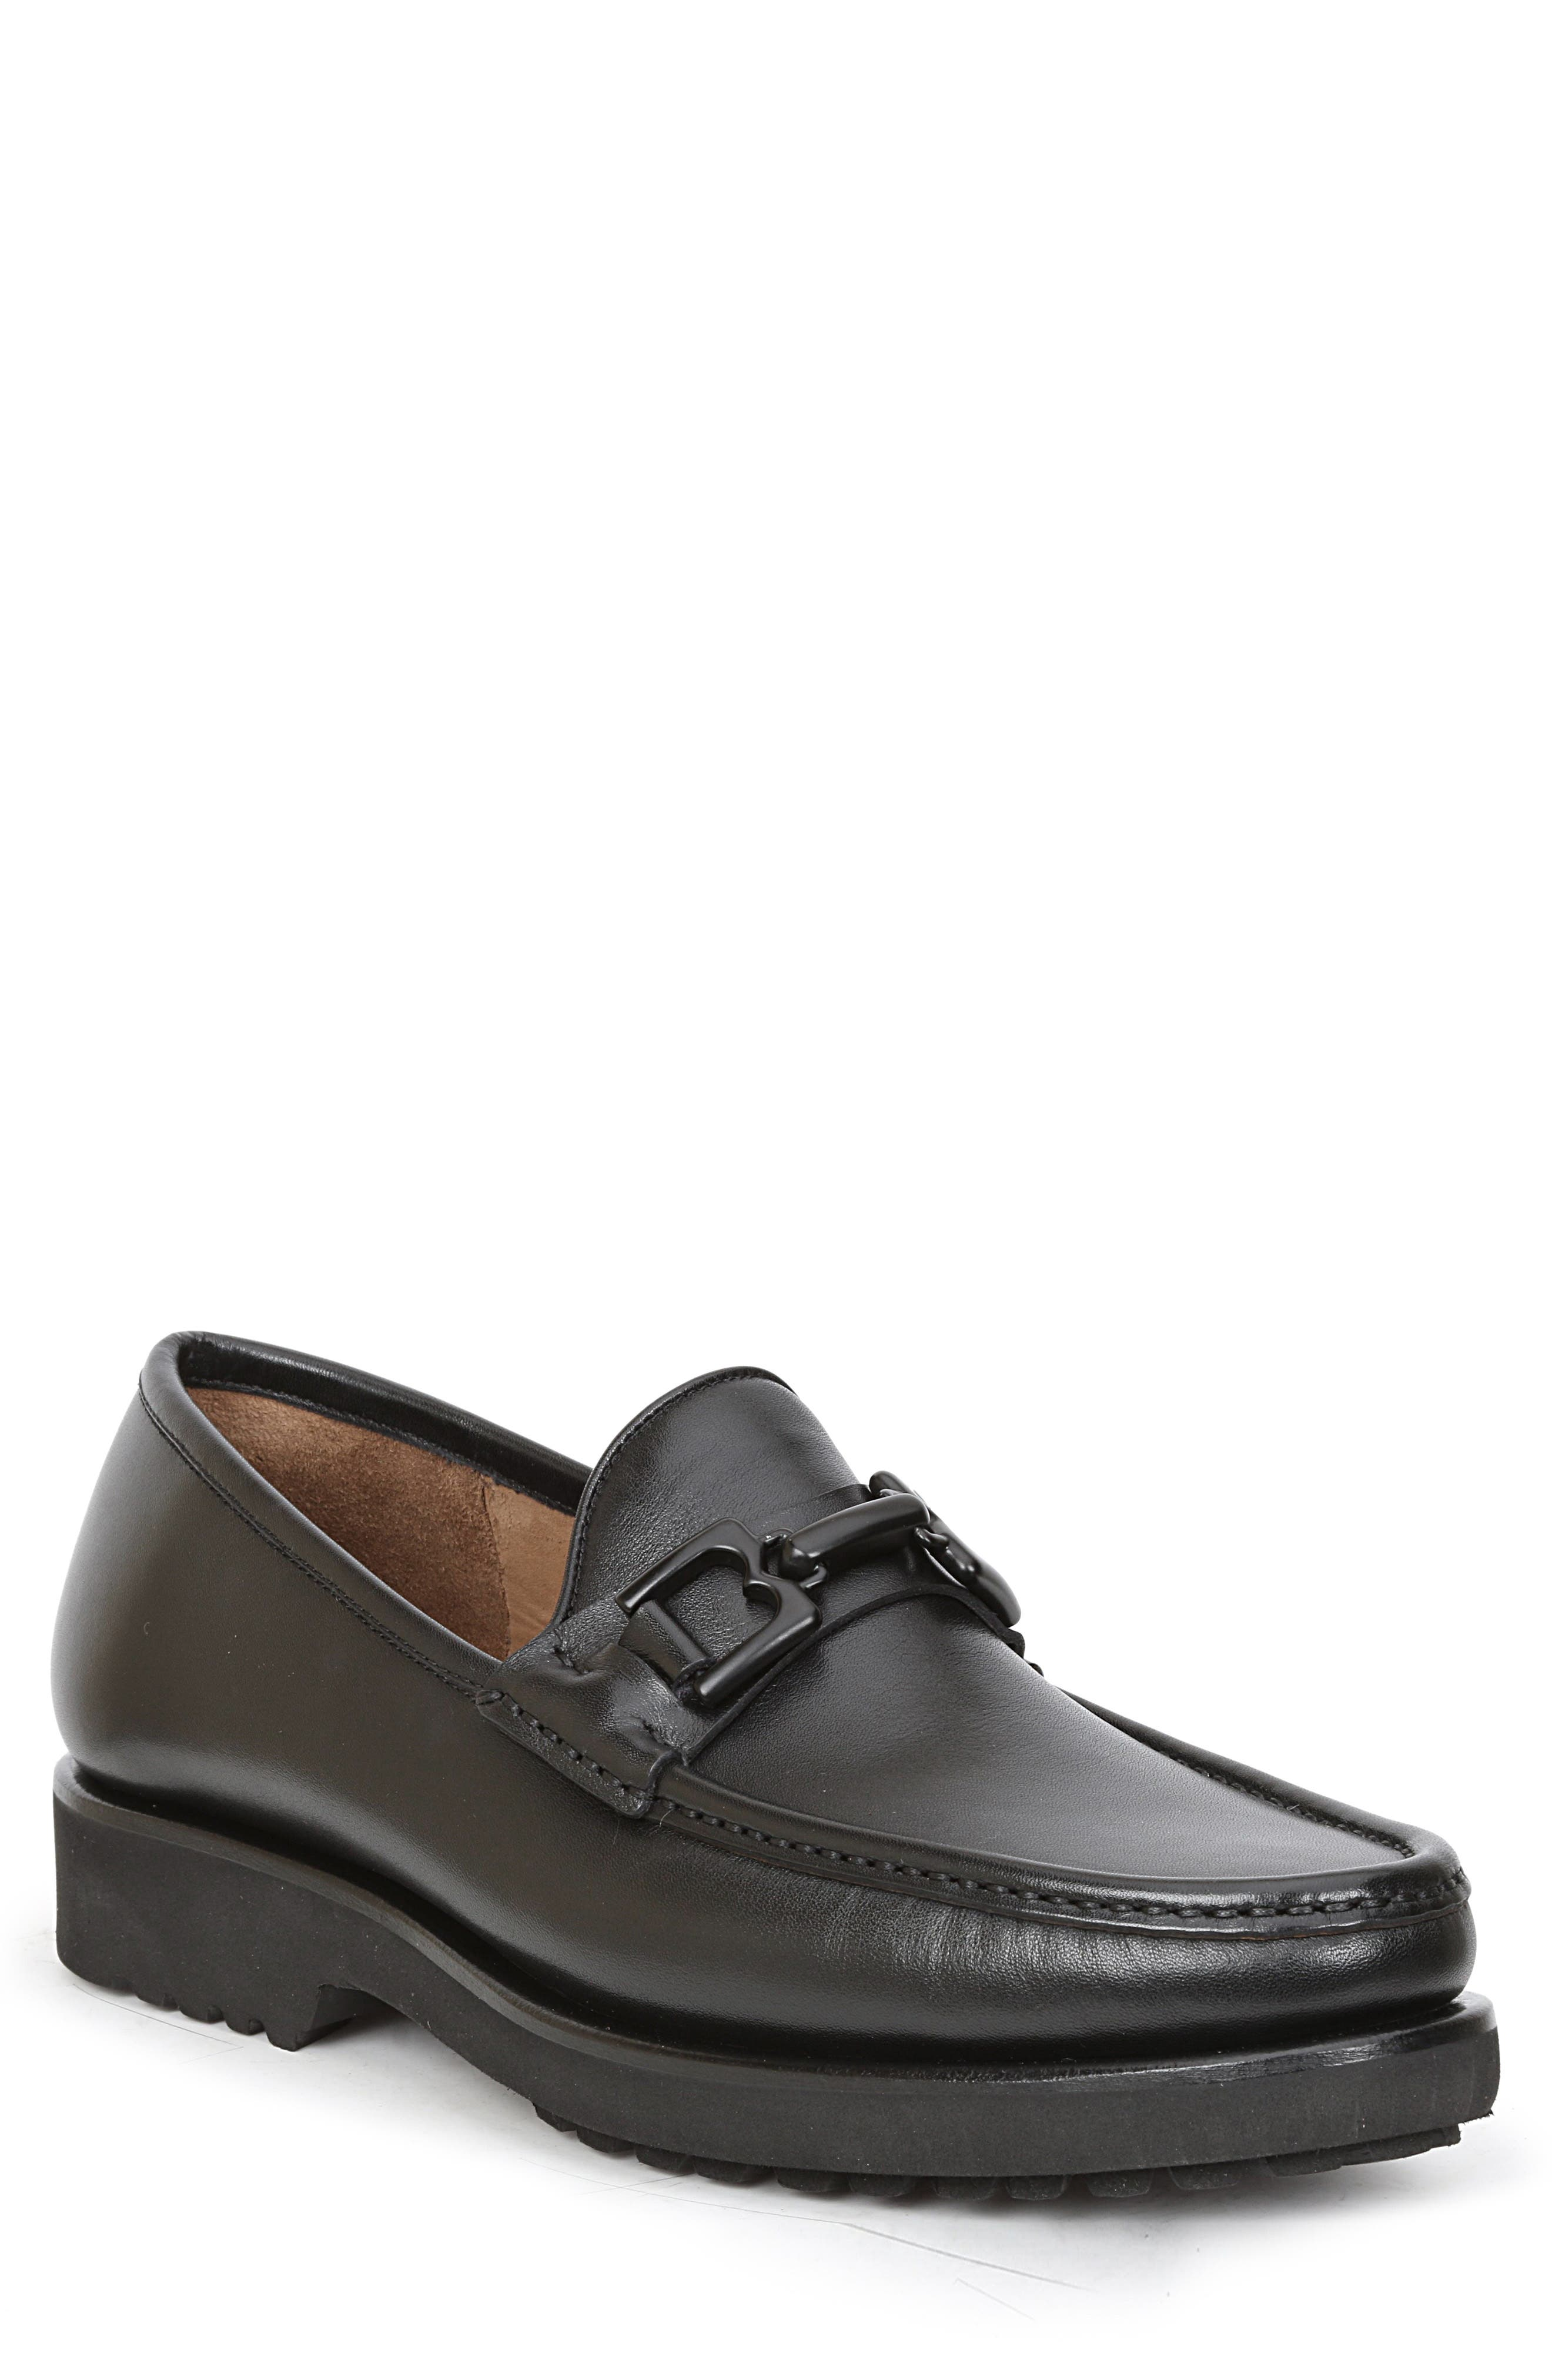 Falcone Lugged Bit Loafer,                             Main thumbnail 1, color,                             BLACK